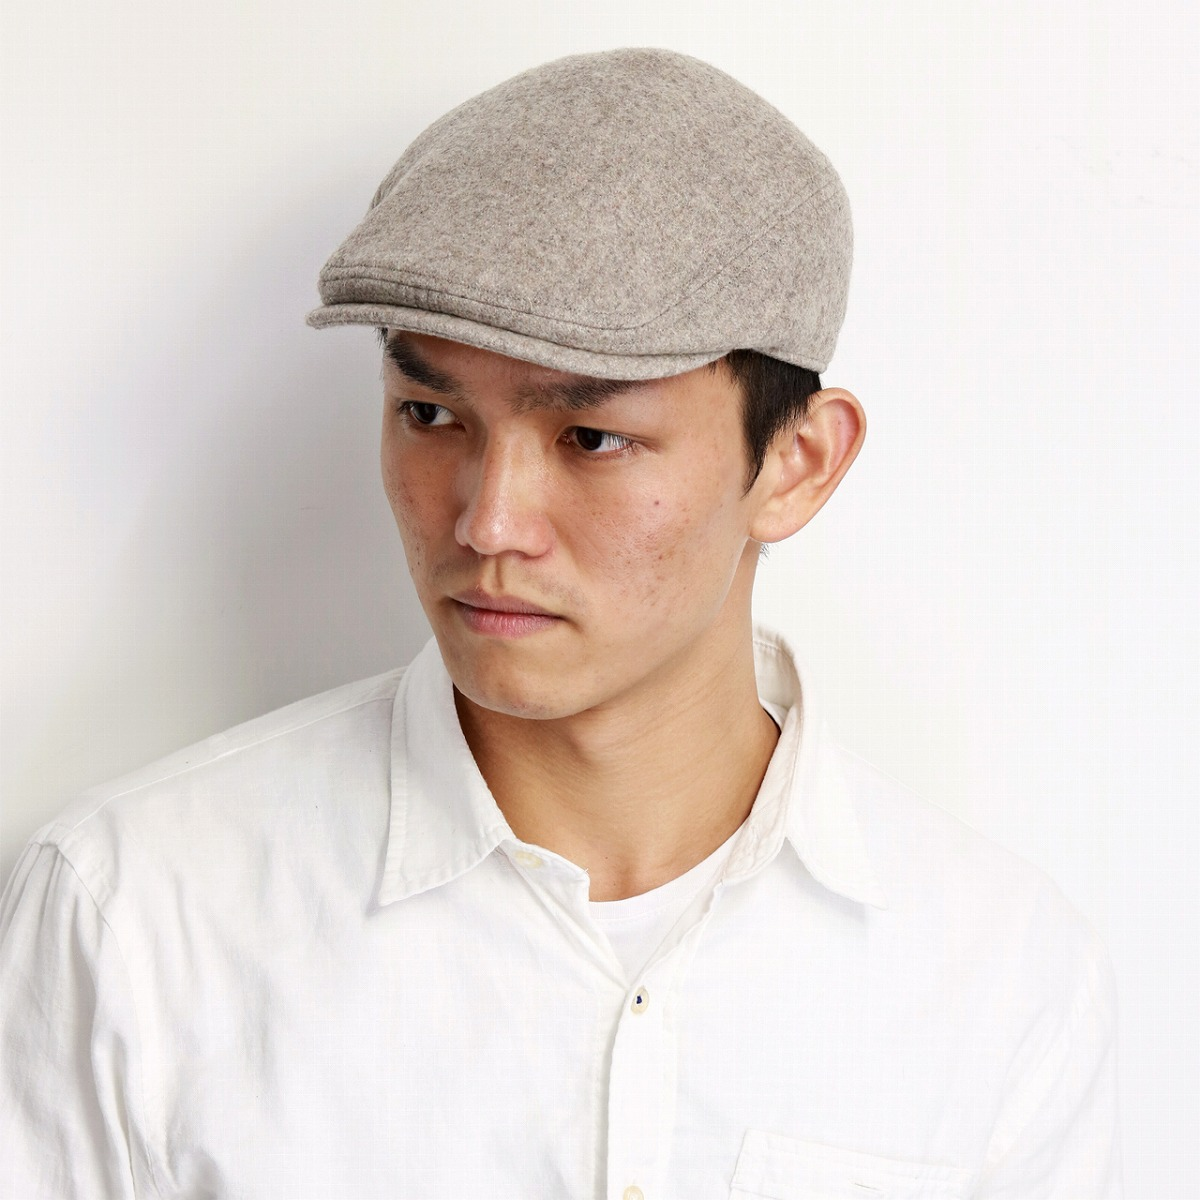 39c86a5e79852 It is a gift present in crocodile brand one point beige  ivy cap  Father s  Day made in lacoste hunting cap men thunk pull plain fabric Lacoste hat  gentleman ...